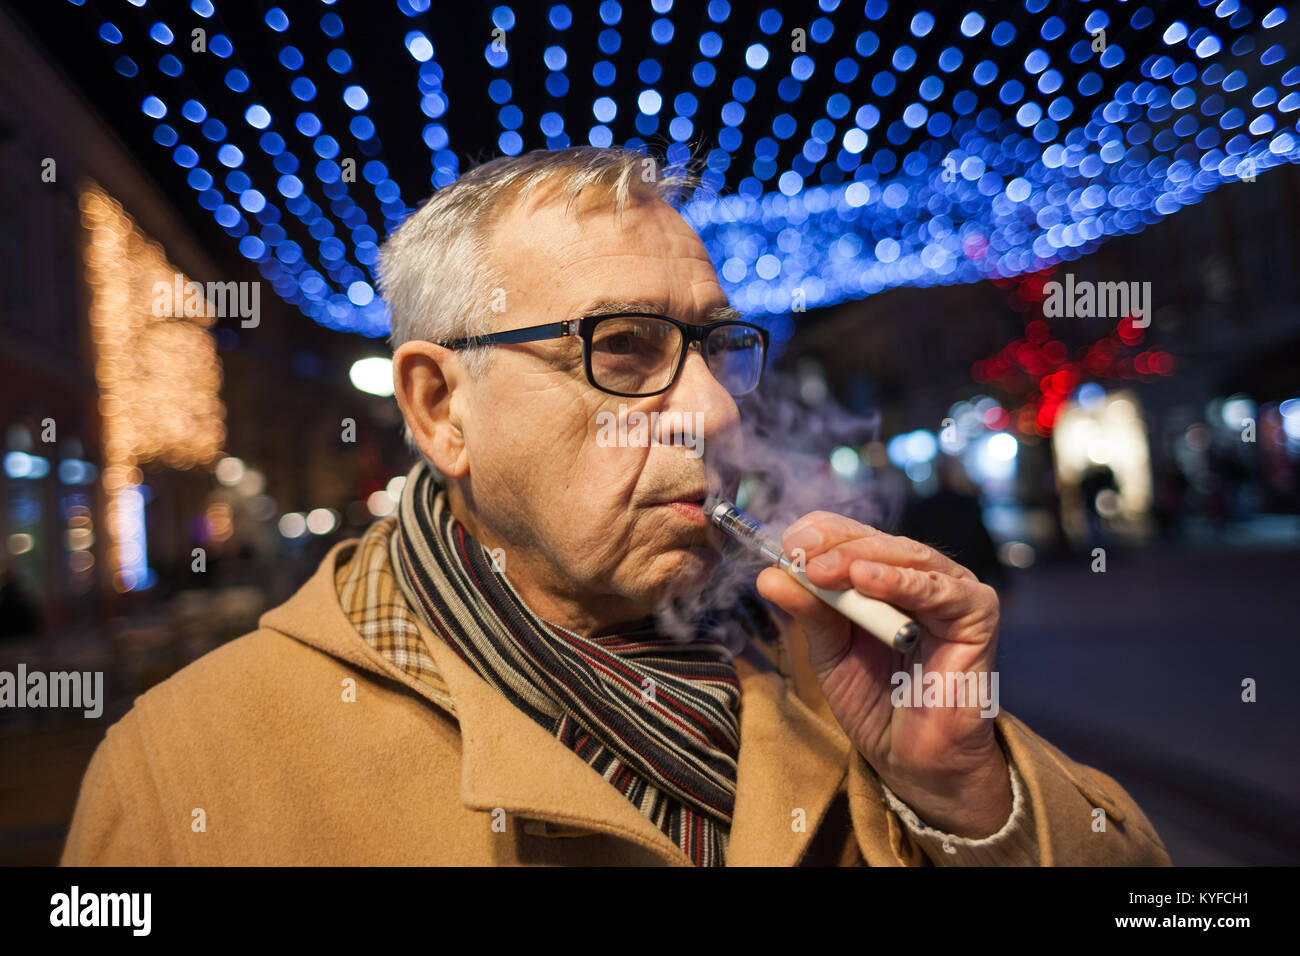 Senior man is smoking electronic cigarette in the city. - Stock Image